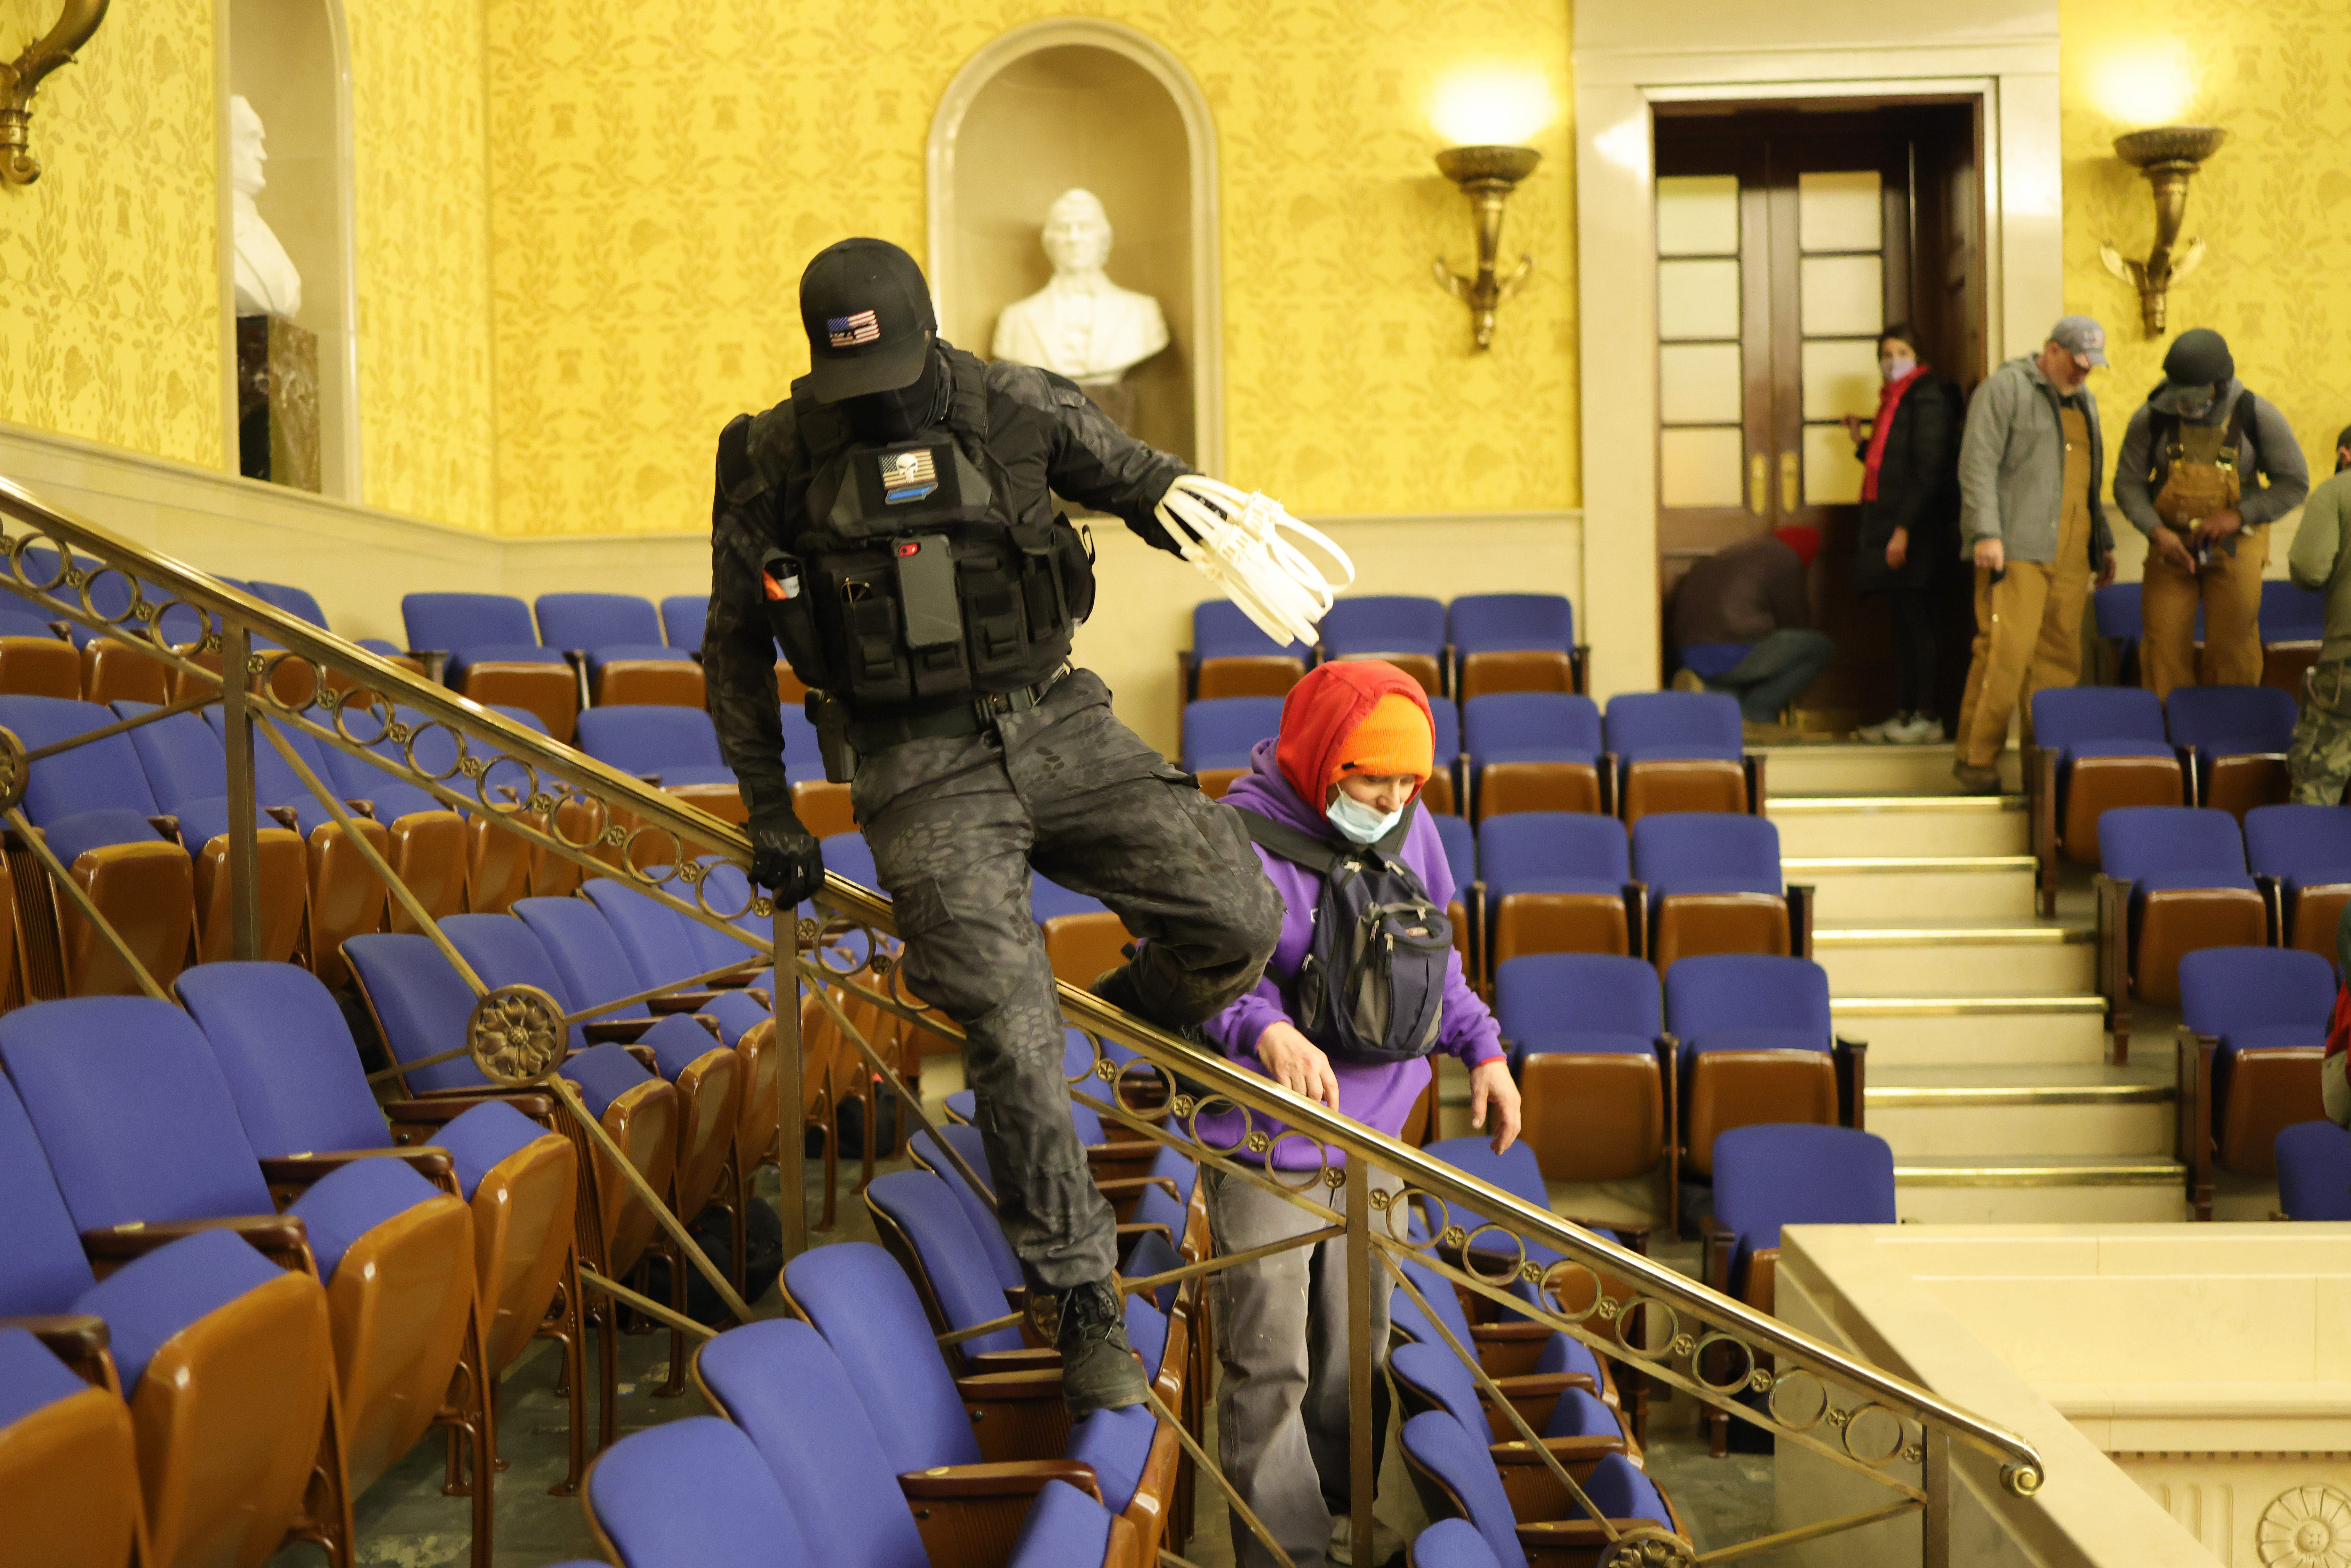 FBI looking for man in Senate with zip ties, tactical gear; experts call him a rioter  hunting for people